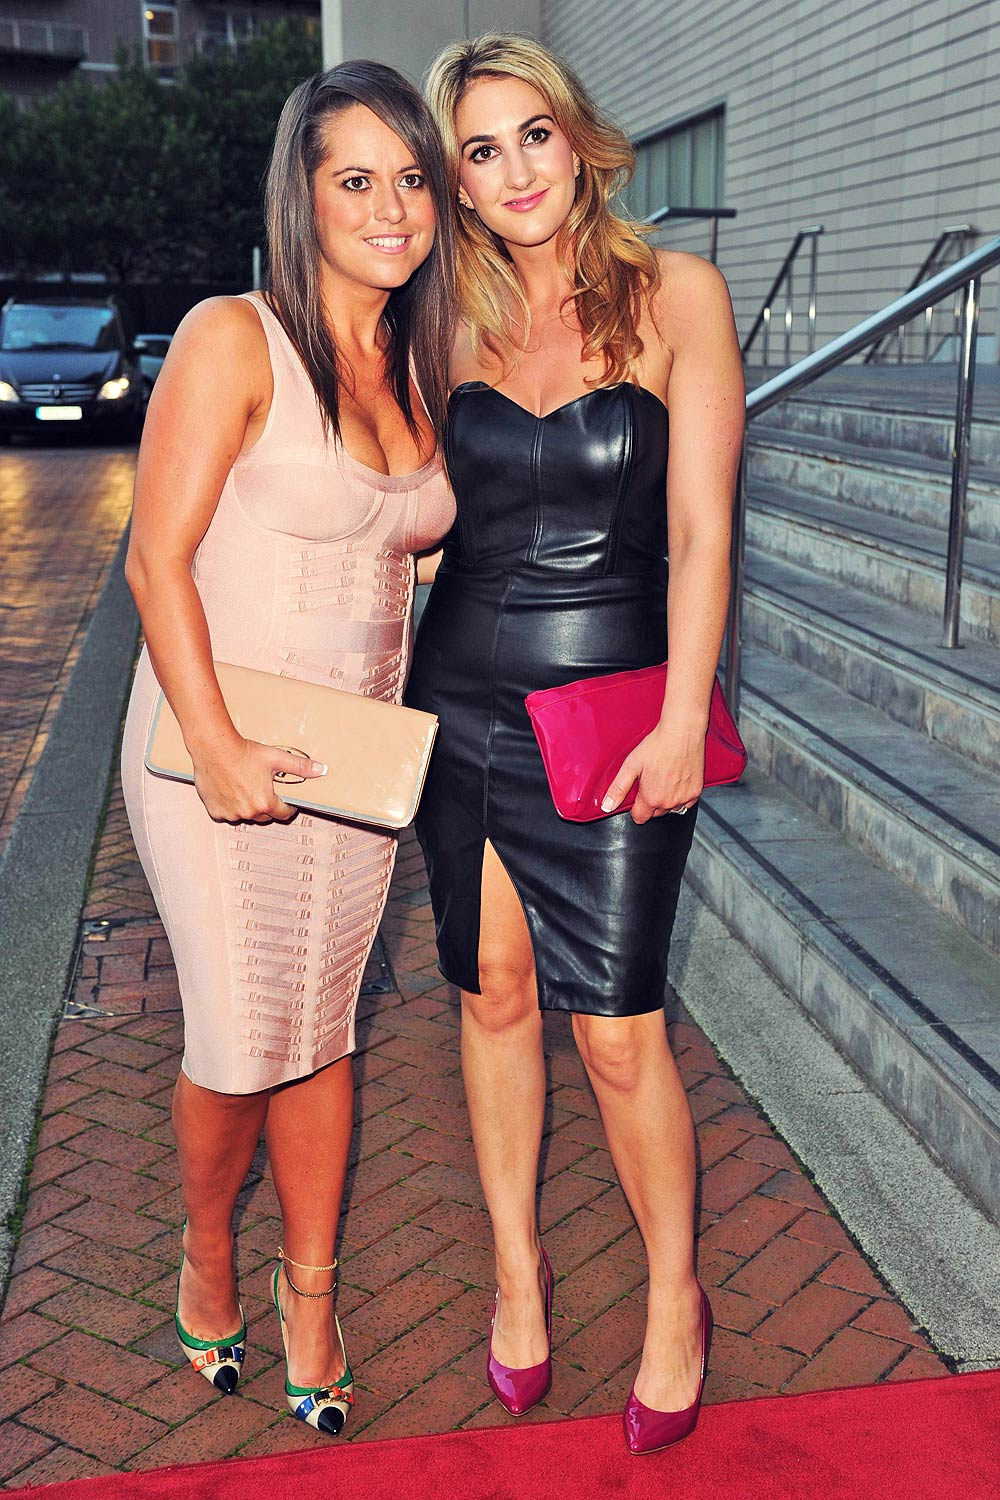 Nicolette North Arrives At The Lowry Hotel Leather